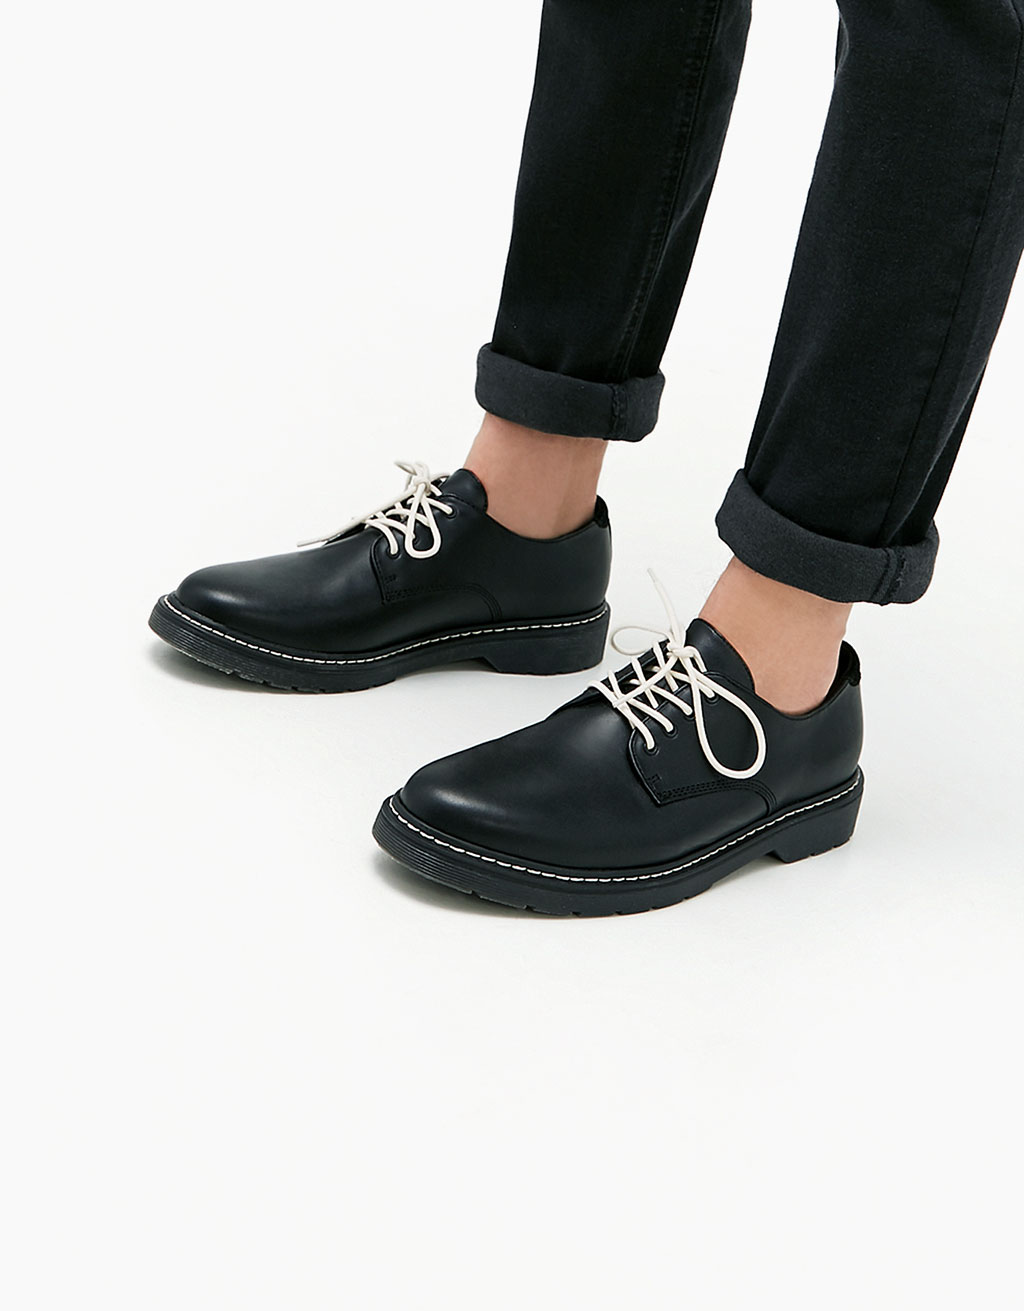 Men's lace-up dress shoes with contrasting topstitching detail